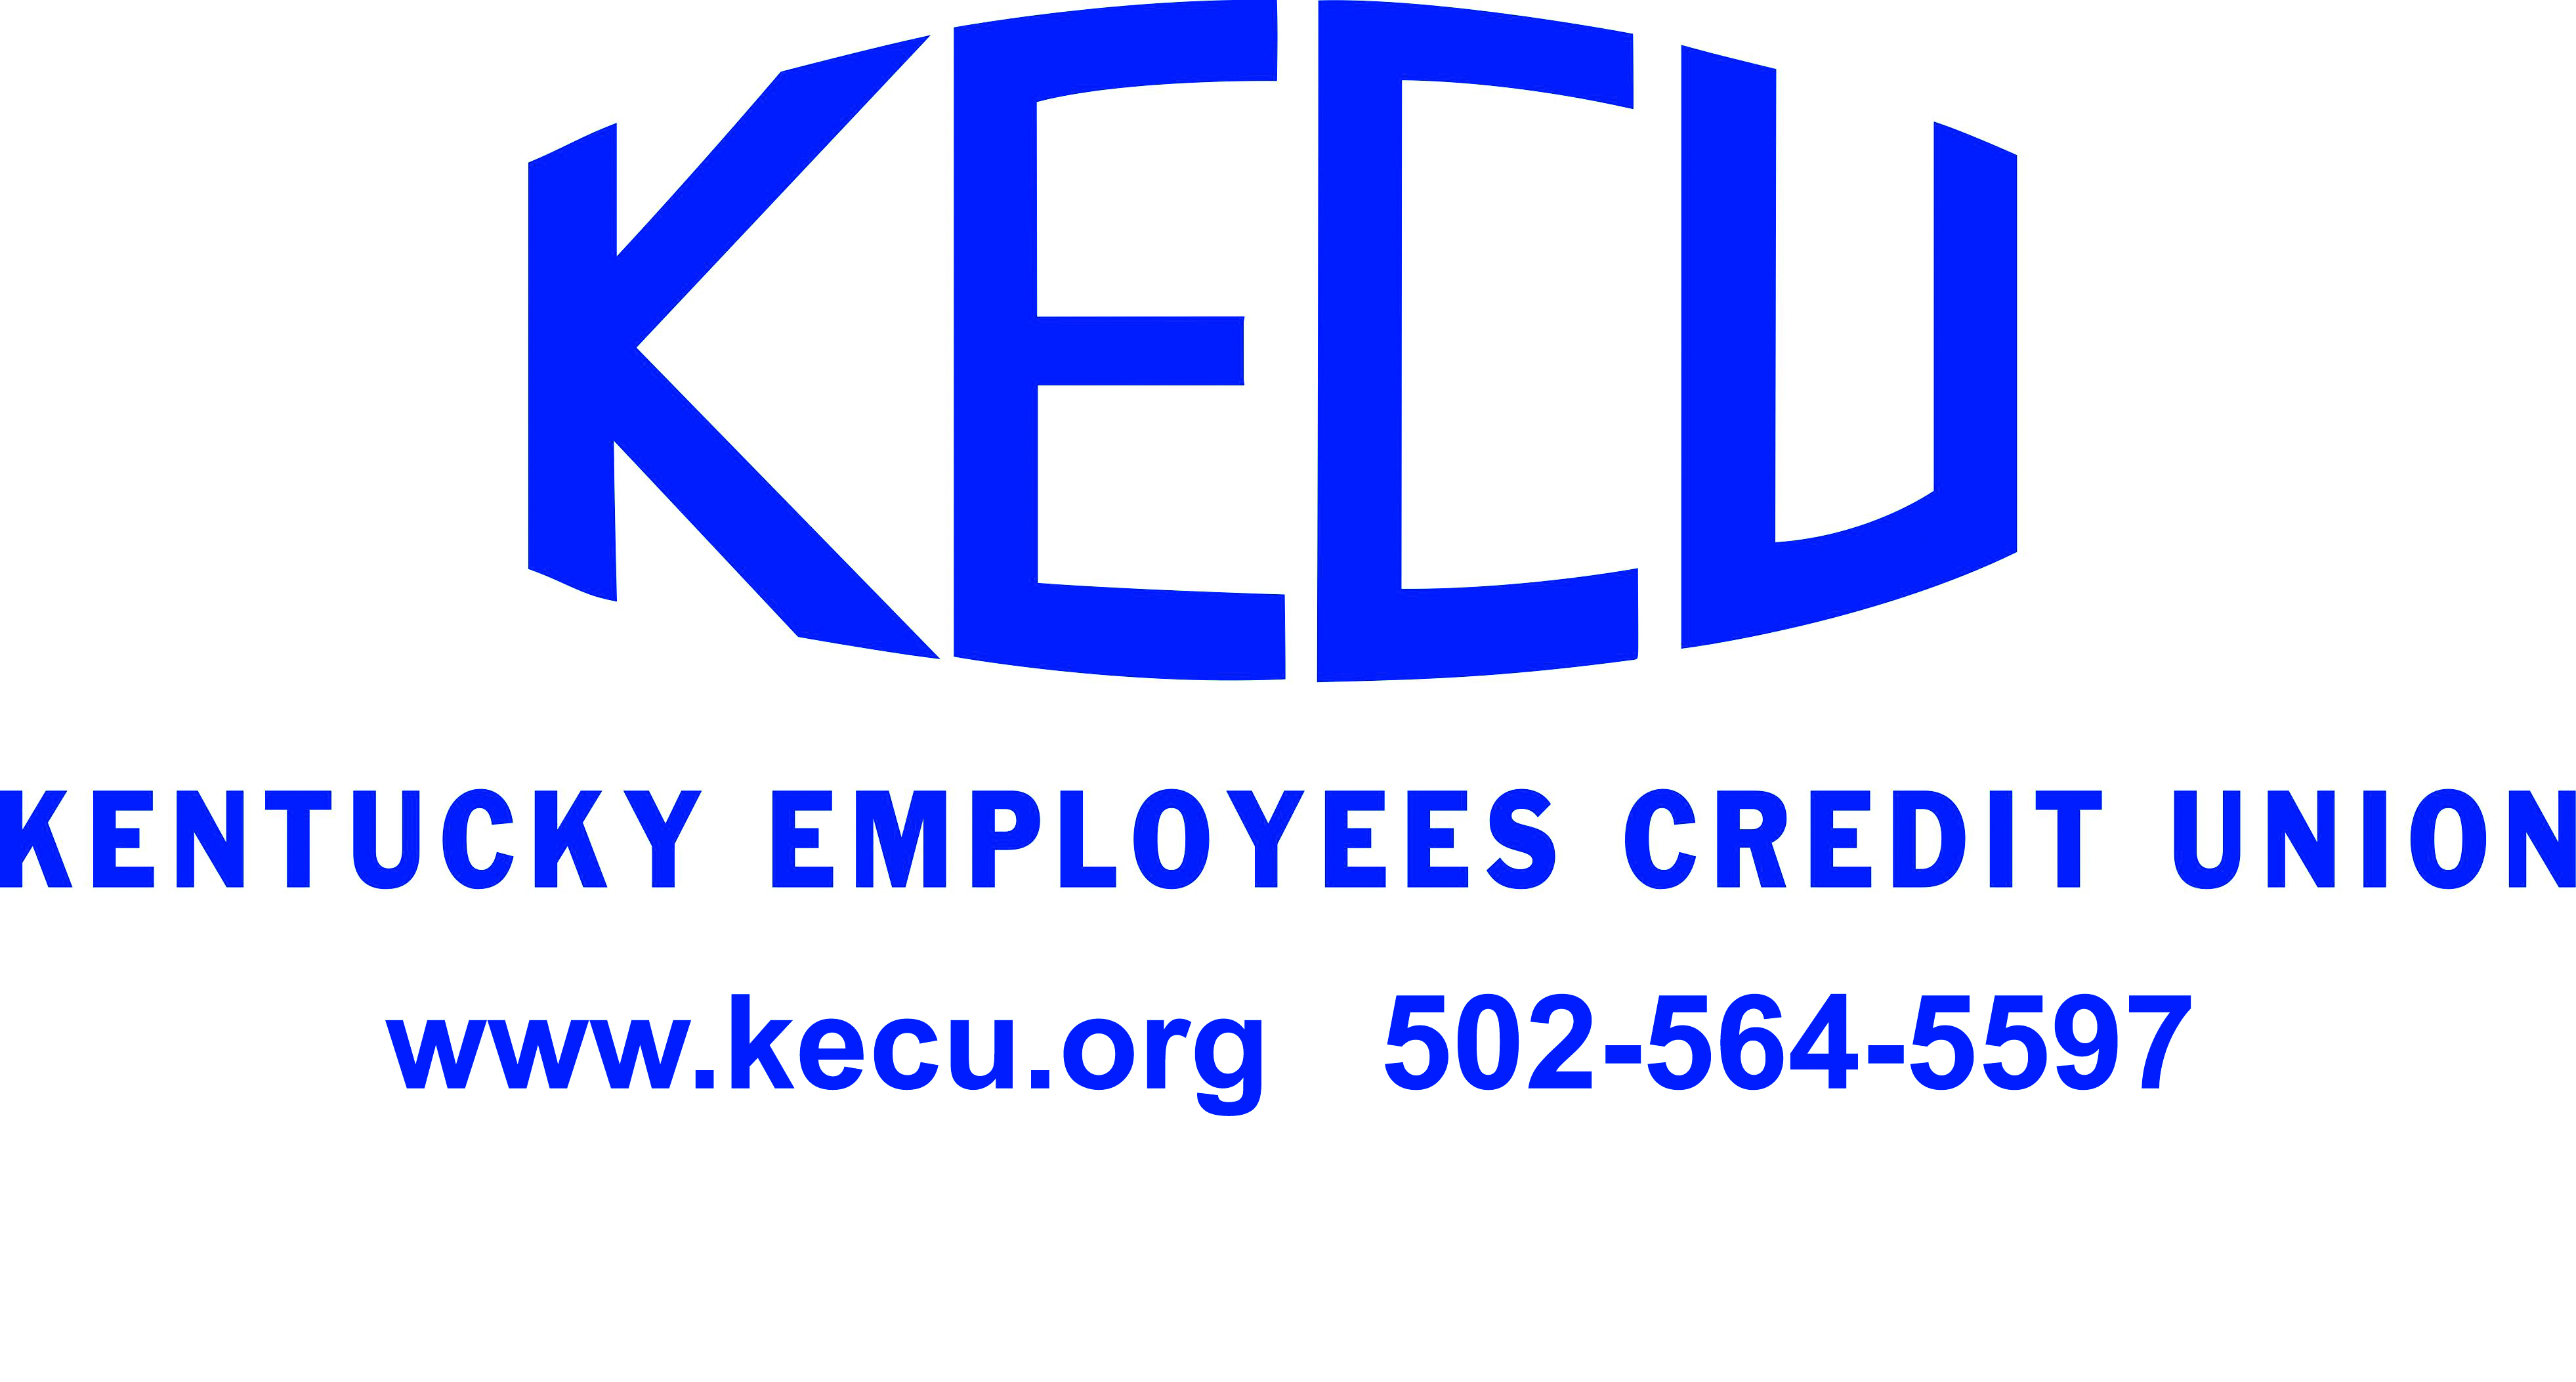 KECU logo, KENTUCKY EMPLOYEES CREDIT UNION, www.kecu.org, 502-564-5597